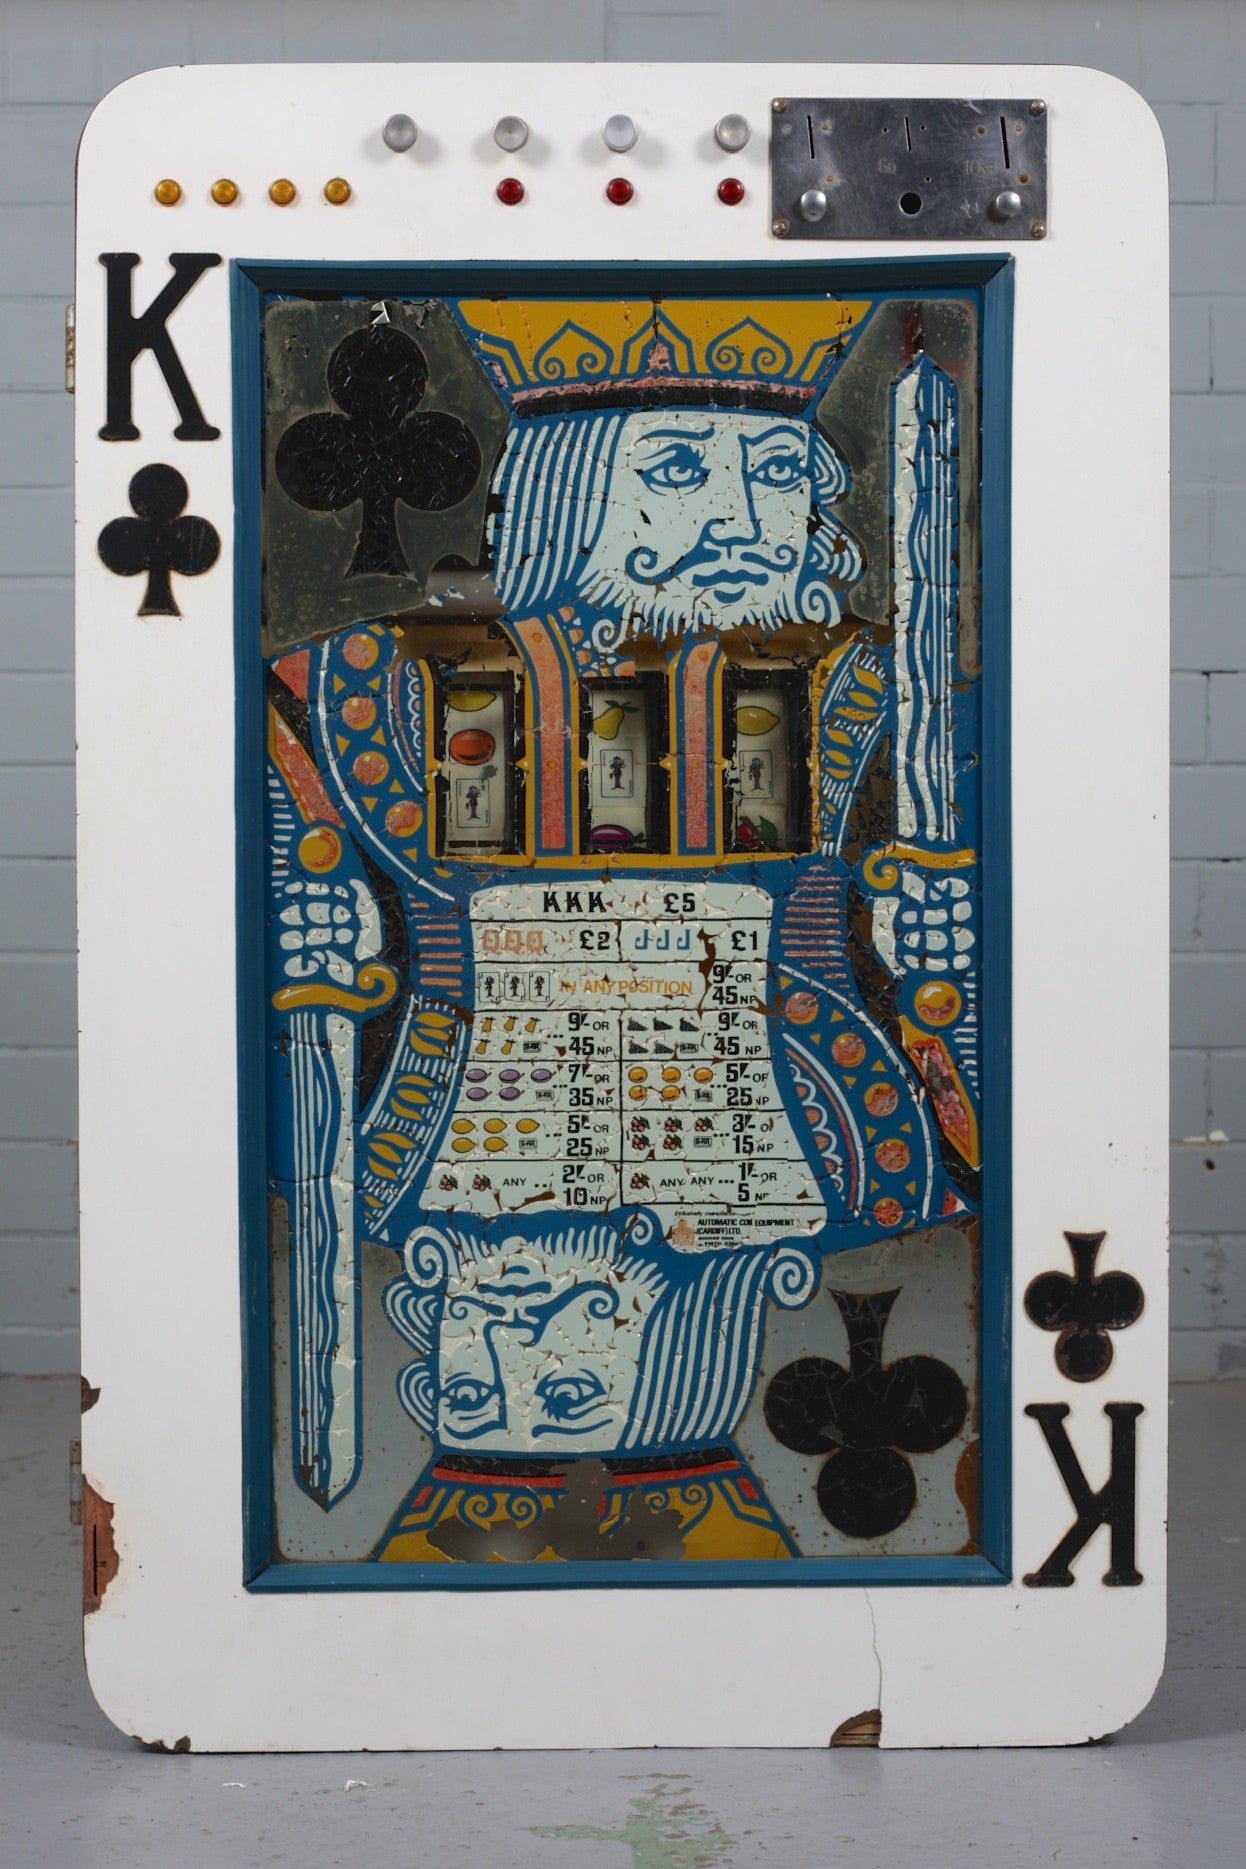 King of Clubs Fruit Machine